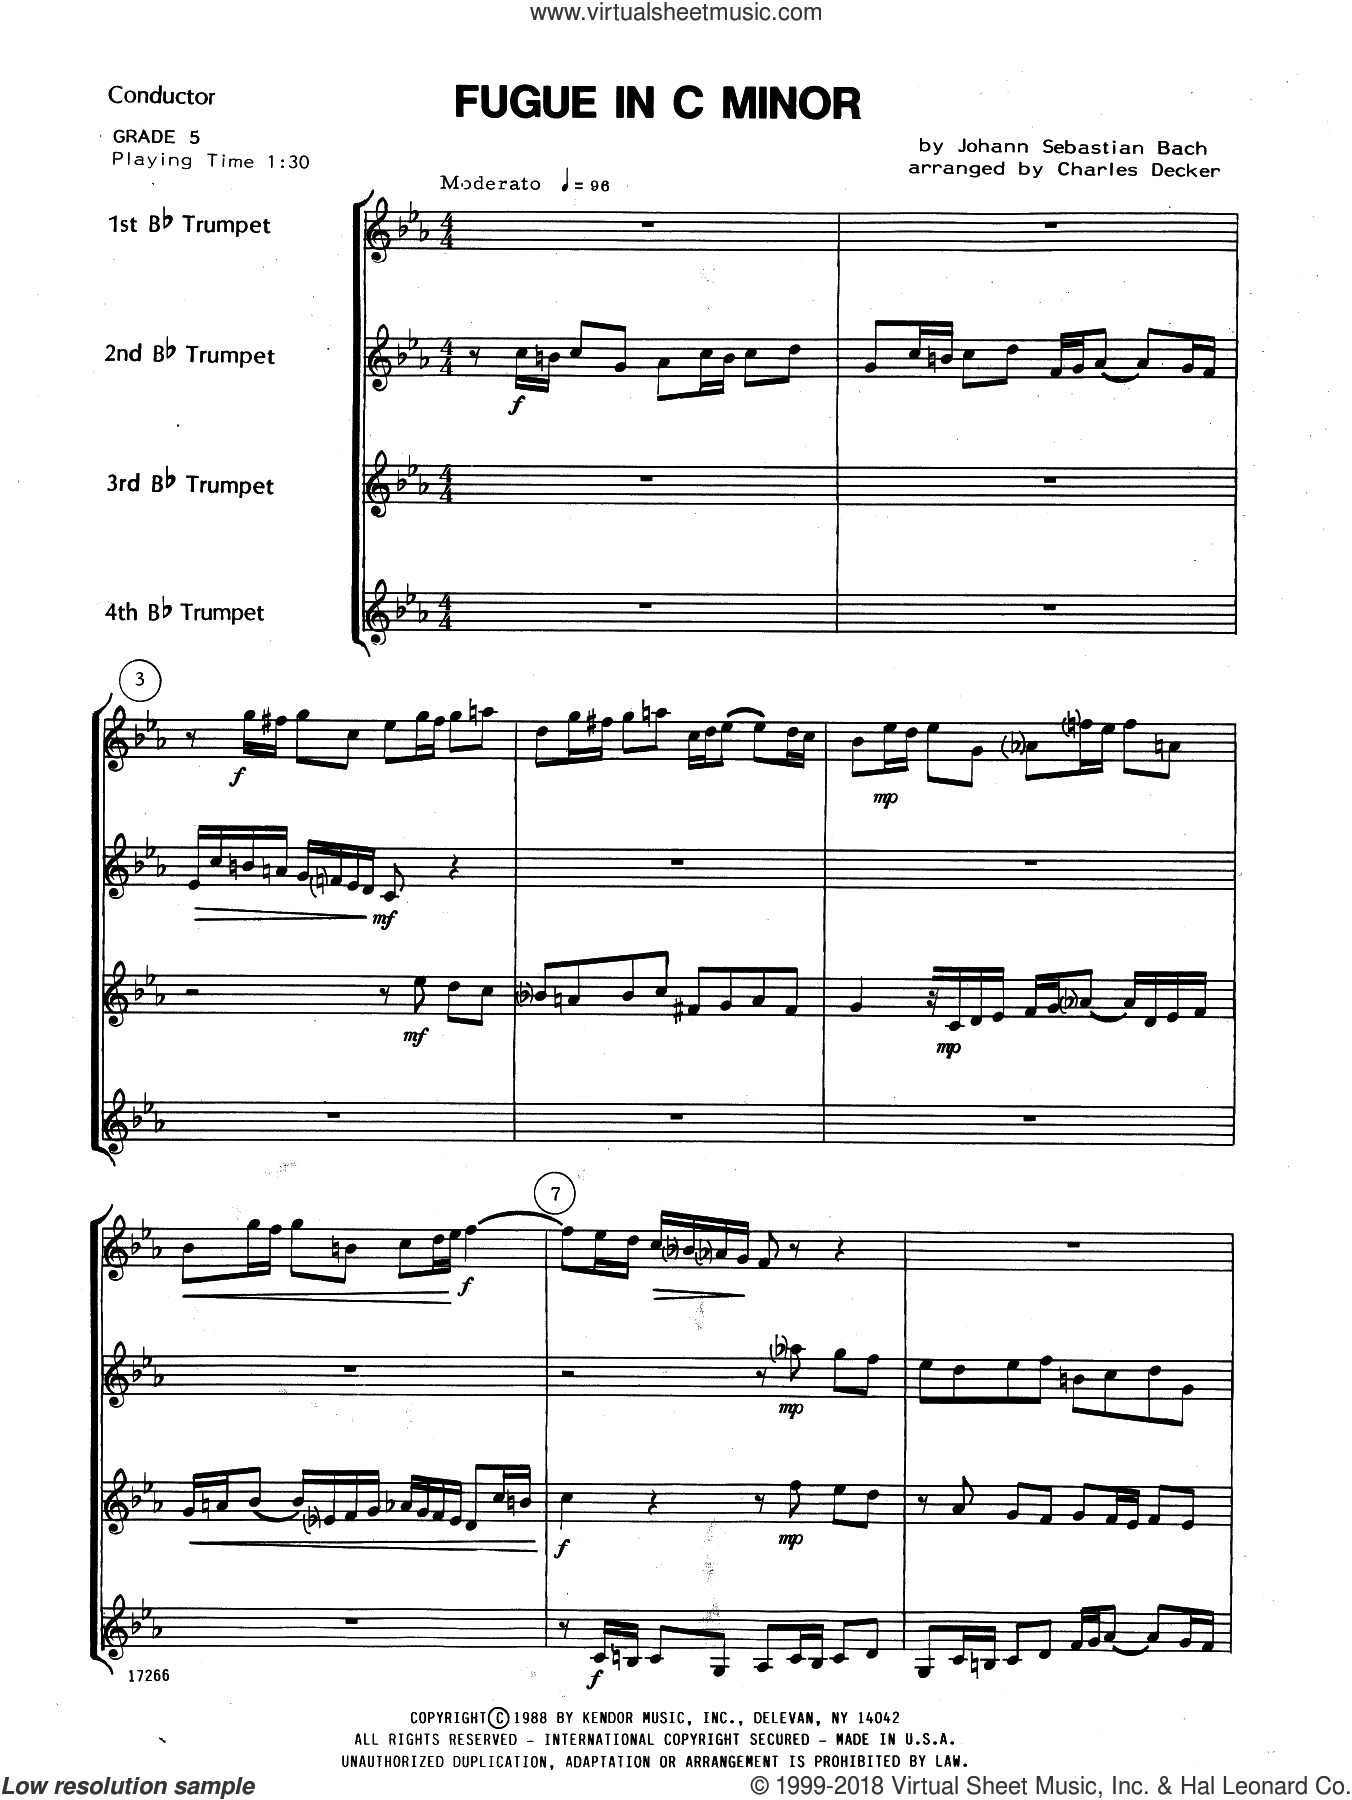 Fugue In C Minor (COMPLETE) sheet music for trumpet quartet by Johann Sebastian Bach and Charles Decker, classical score, intermediate. Score Image Preview.